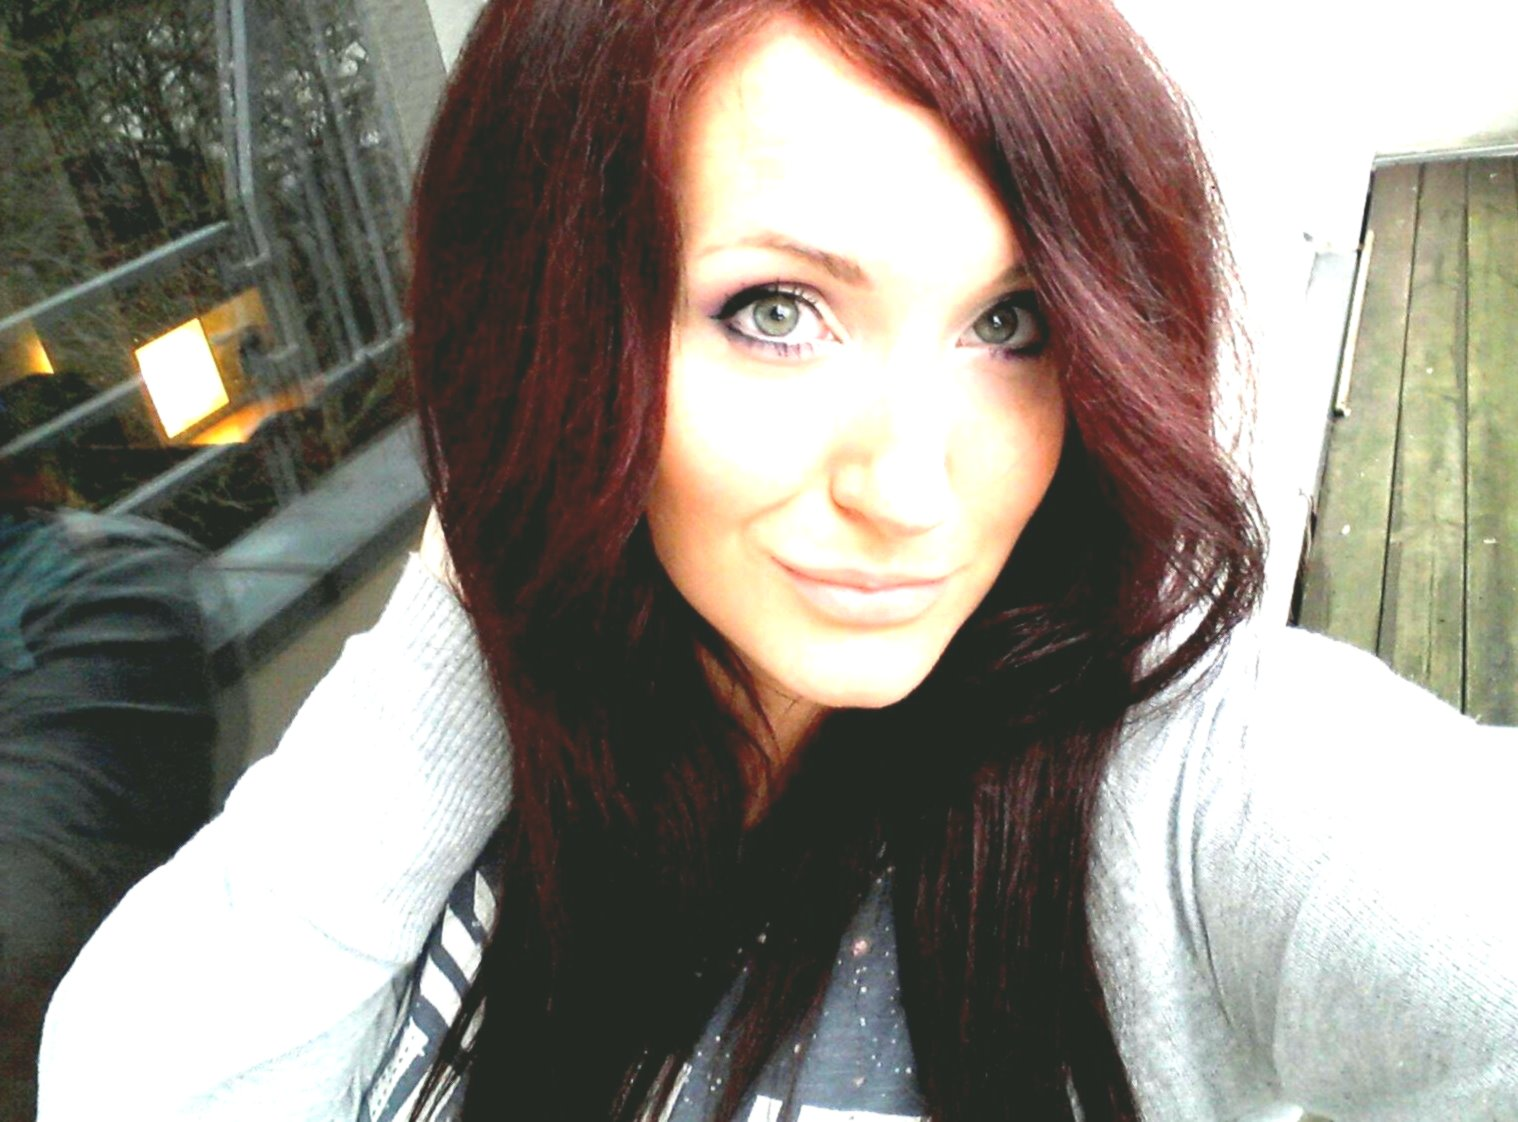 New red hair color for dark hair design - Fascinating Red Hair Color For Dark Hair Collection